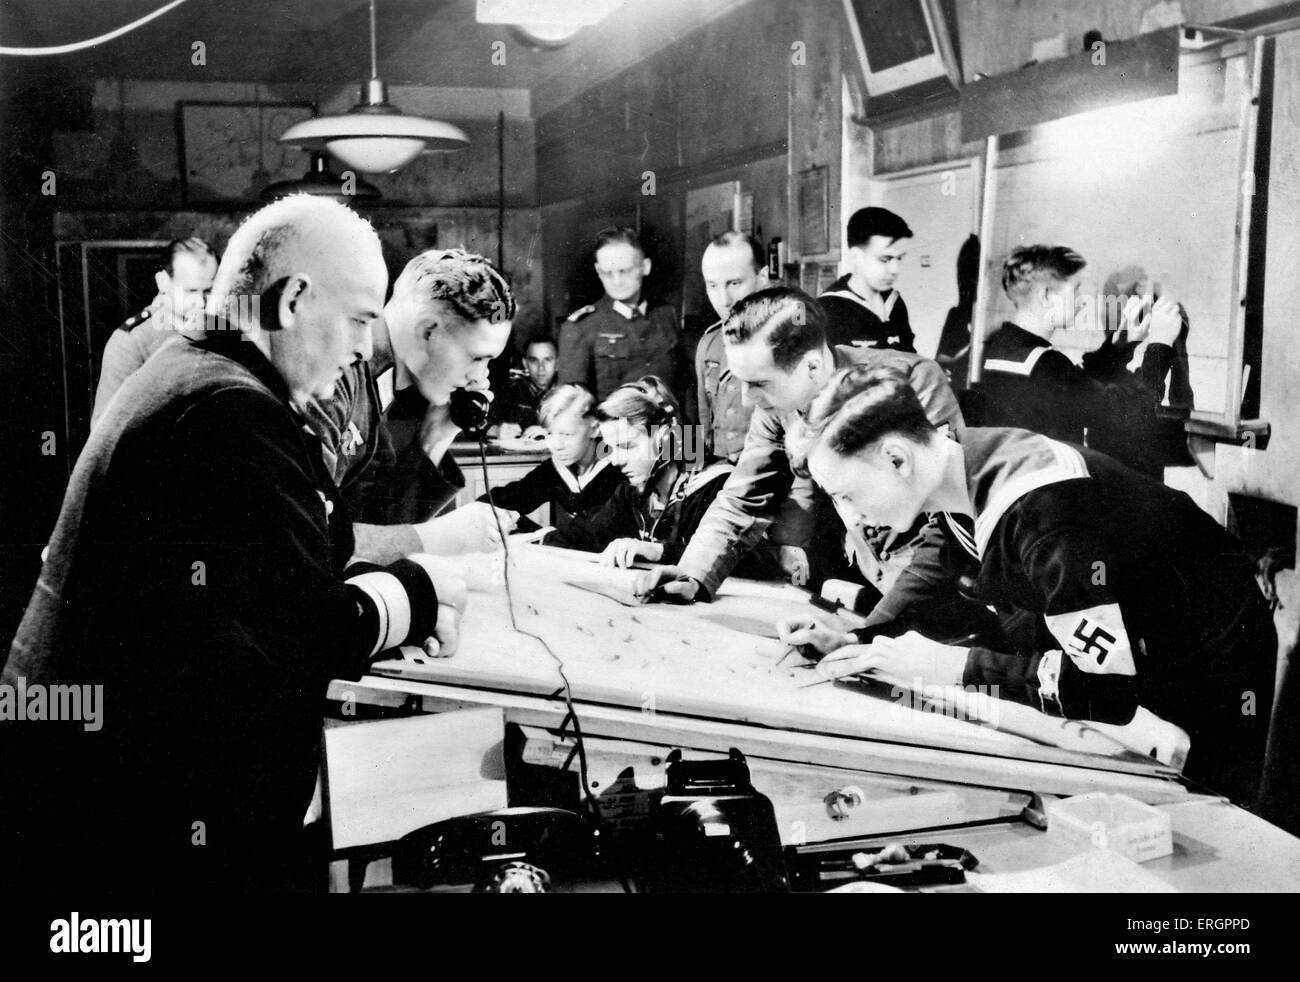 WW2 - German navy headquarters. Naval auxiliaries working and plotting. - Stock Image